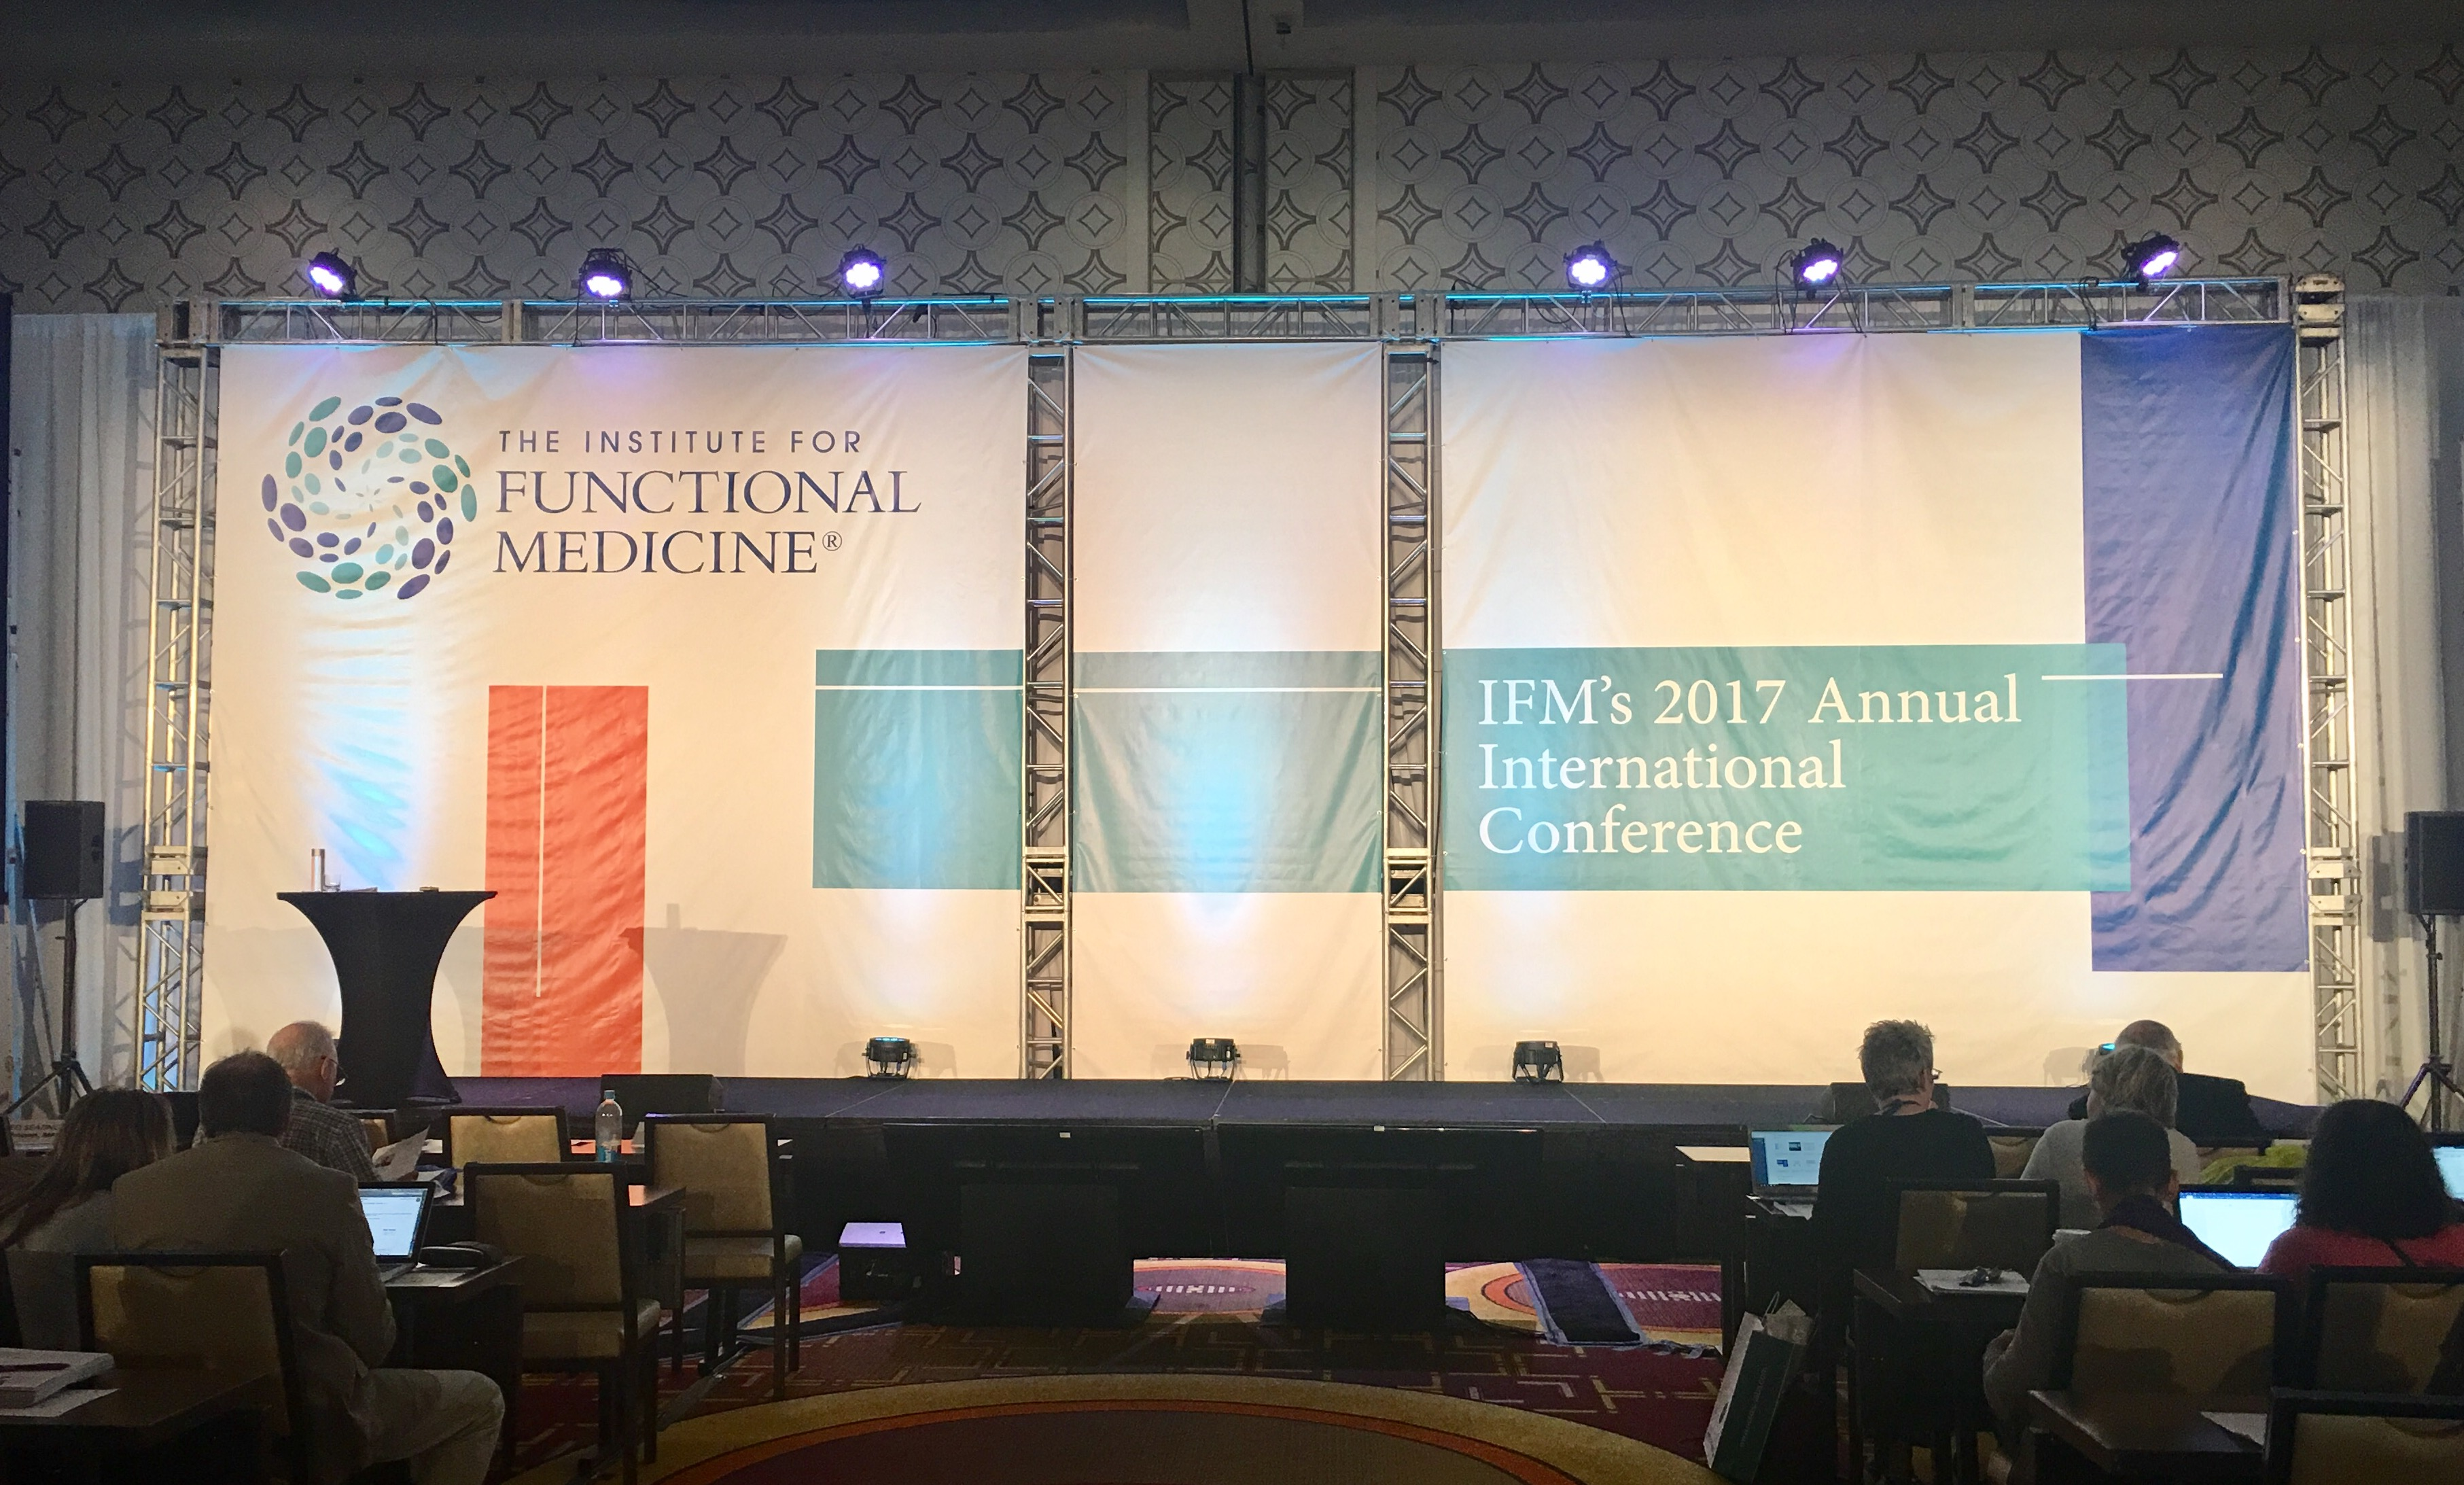 Your guide to the Institute for Functional Medicine's Annual